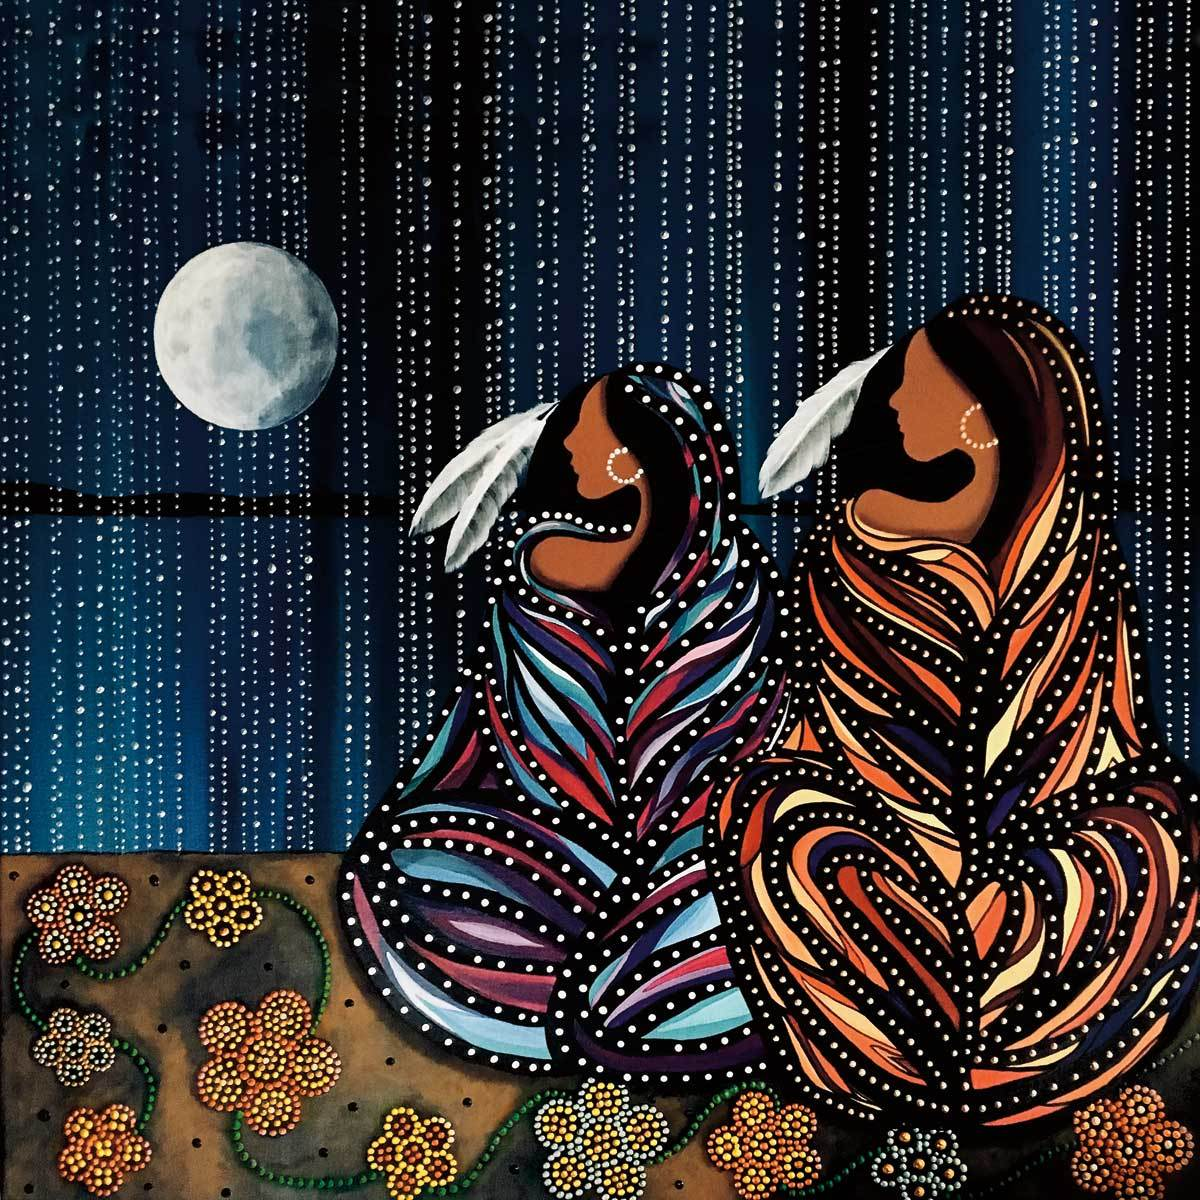 Indigenous artwork by CAP, puzzles, indigenous art, indigenous artist, colourful art, art mugs, art puzzle, wildlife art, wildlife painting, coffee mug, tea mug, best mug, unique gifts, mugs, collectibles